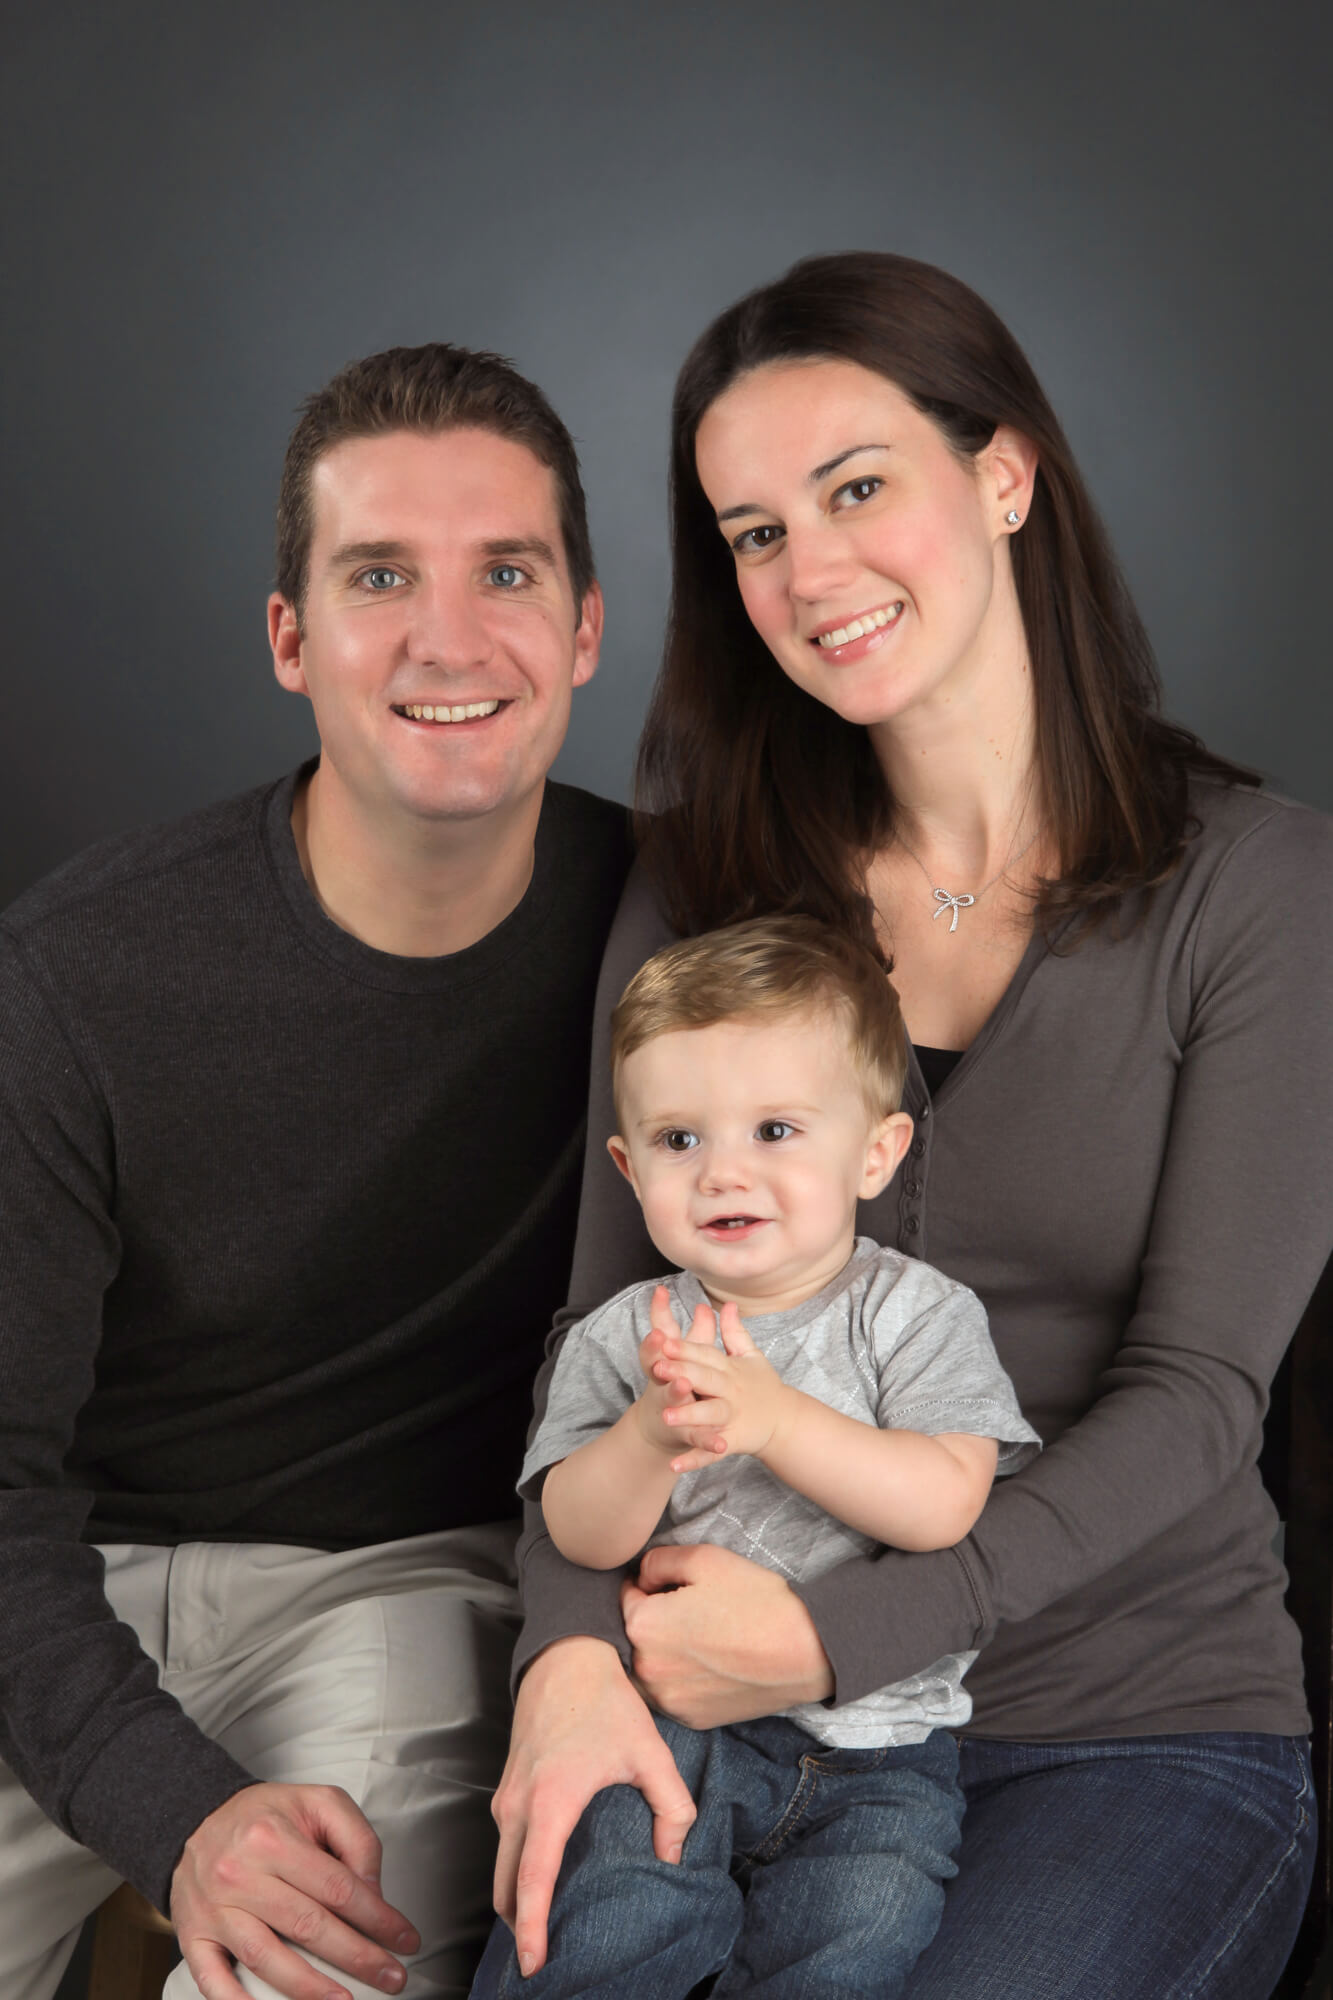 Young family posed on studio's grey backdrop